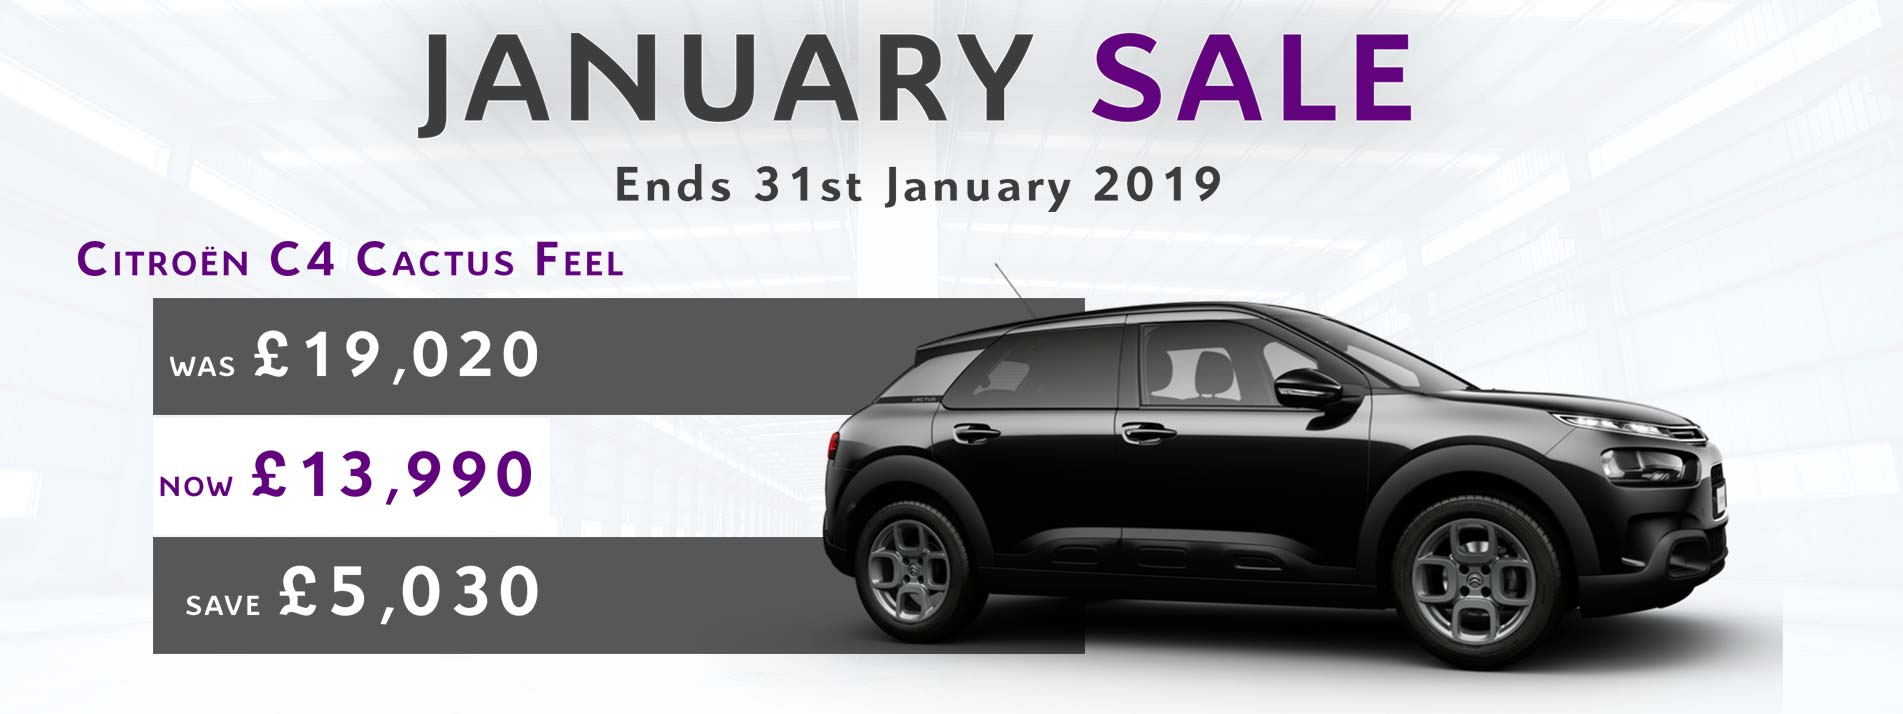 citroen-c4-cactus-feel-big-5000-saving-during-january-m-sli